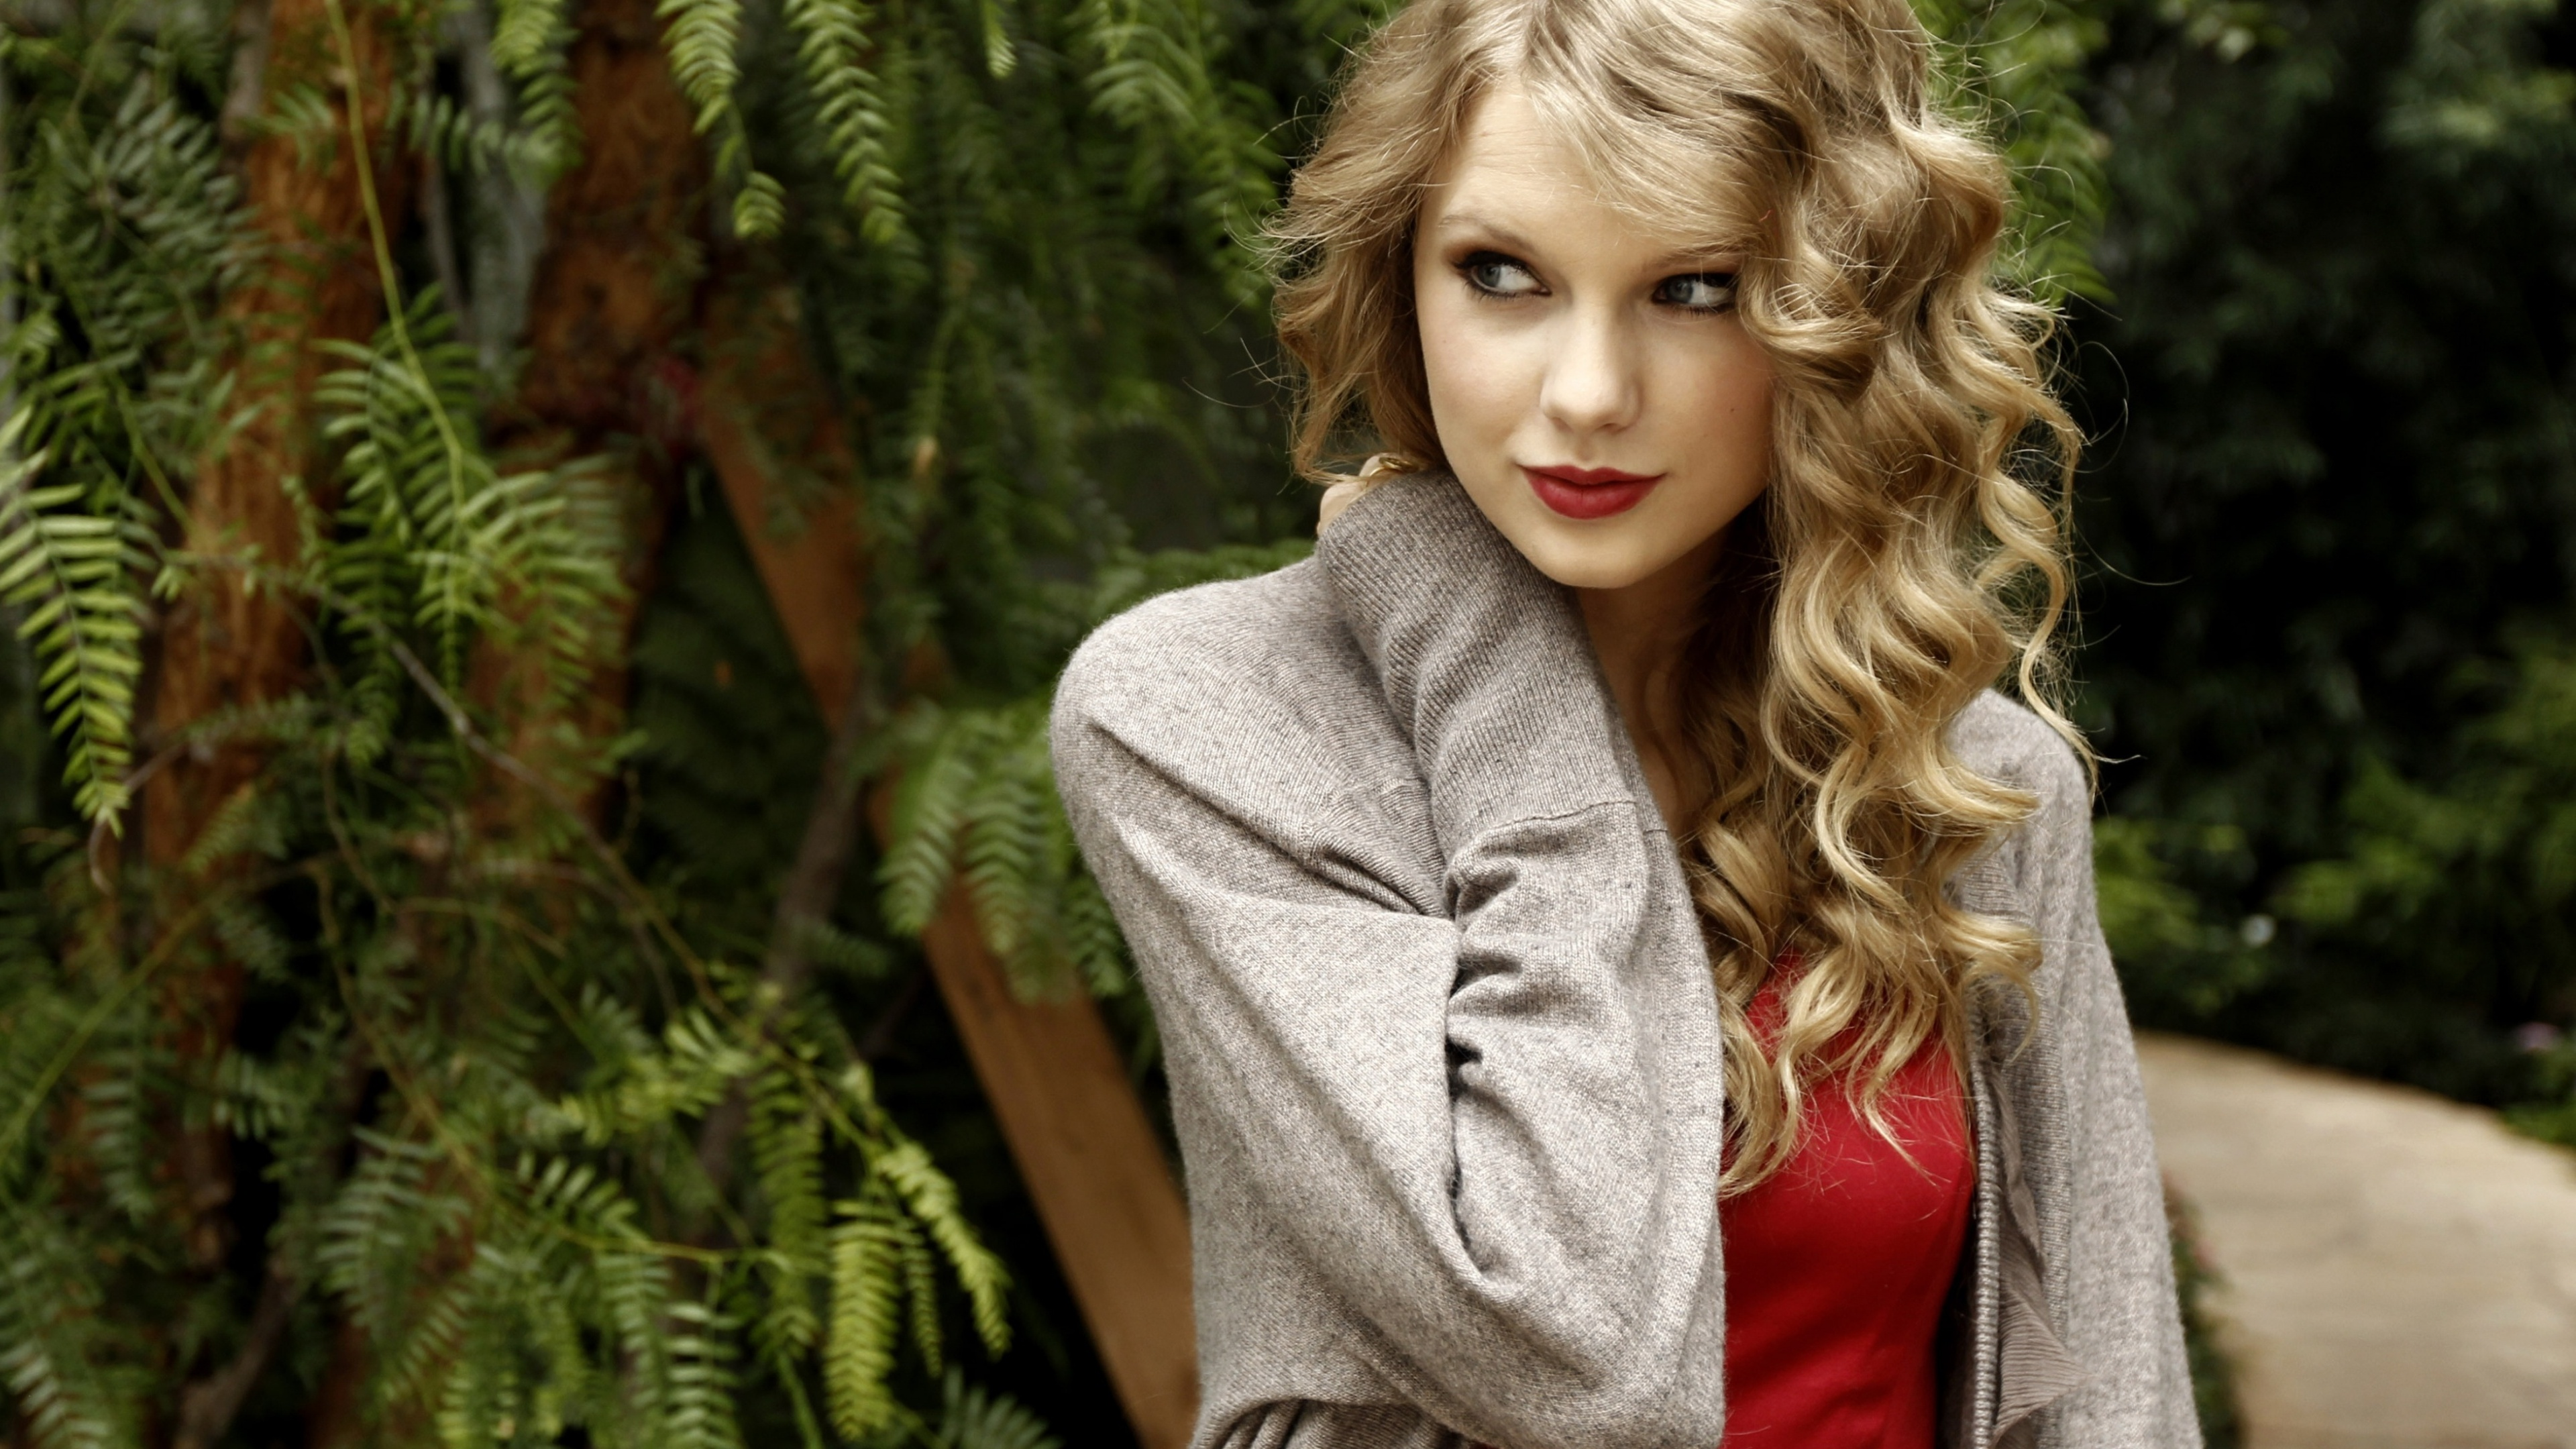 Taylor Swift Beautiful Images: Beautiful And Sexy Taylor Swift HD Wallpapers